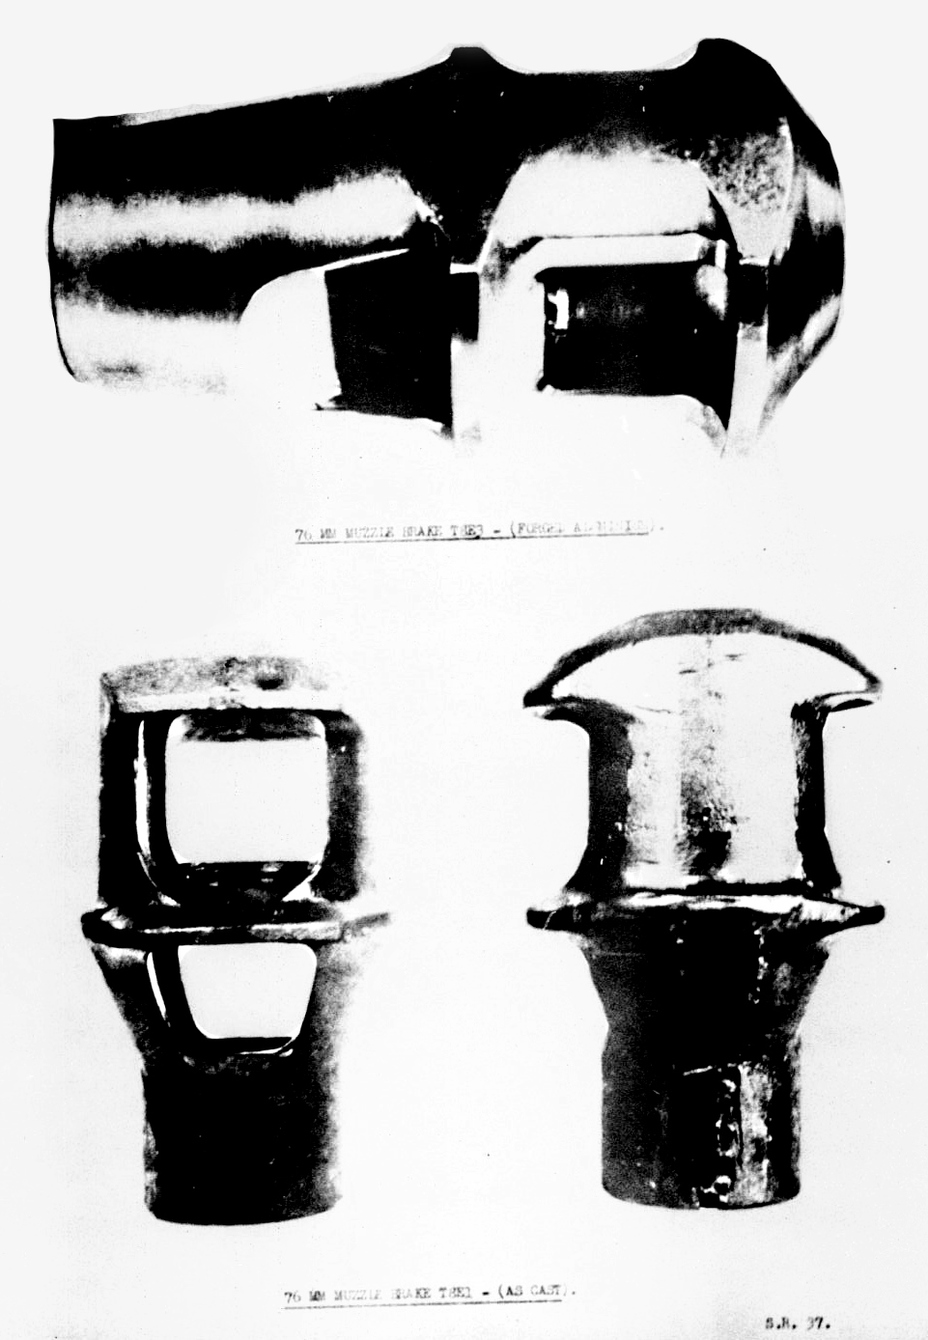 ​Top: experimental forged aluminium T8E3 muzzle brake. Bottom: Experimental cast T8E1 muzzle brake - The Longest Millimeter | Warspot.net